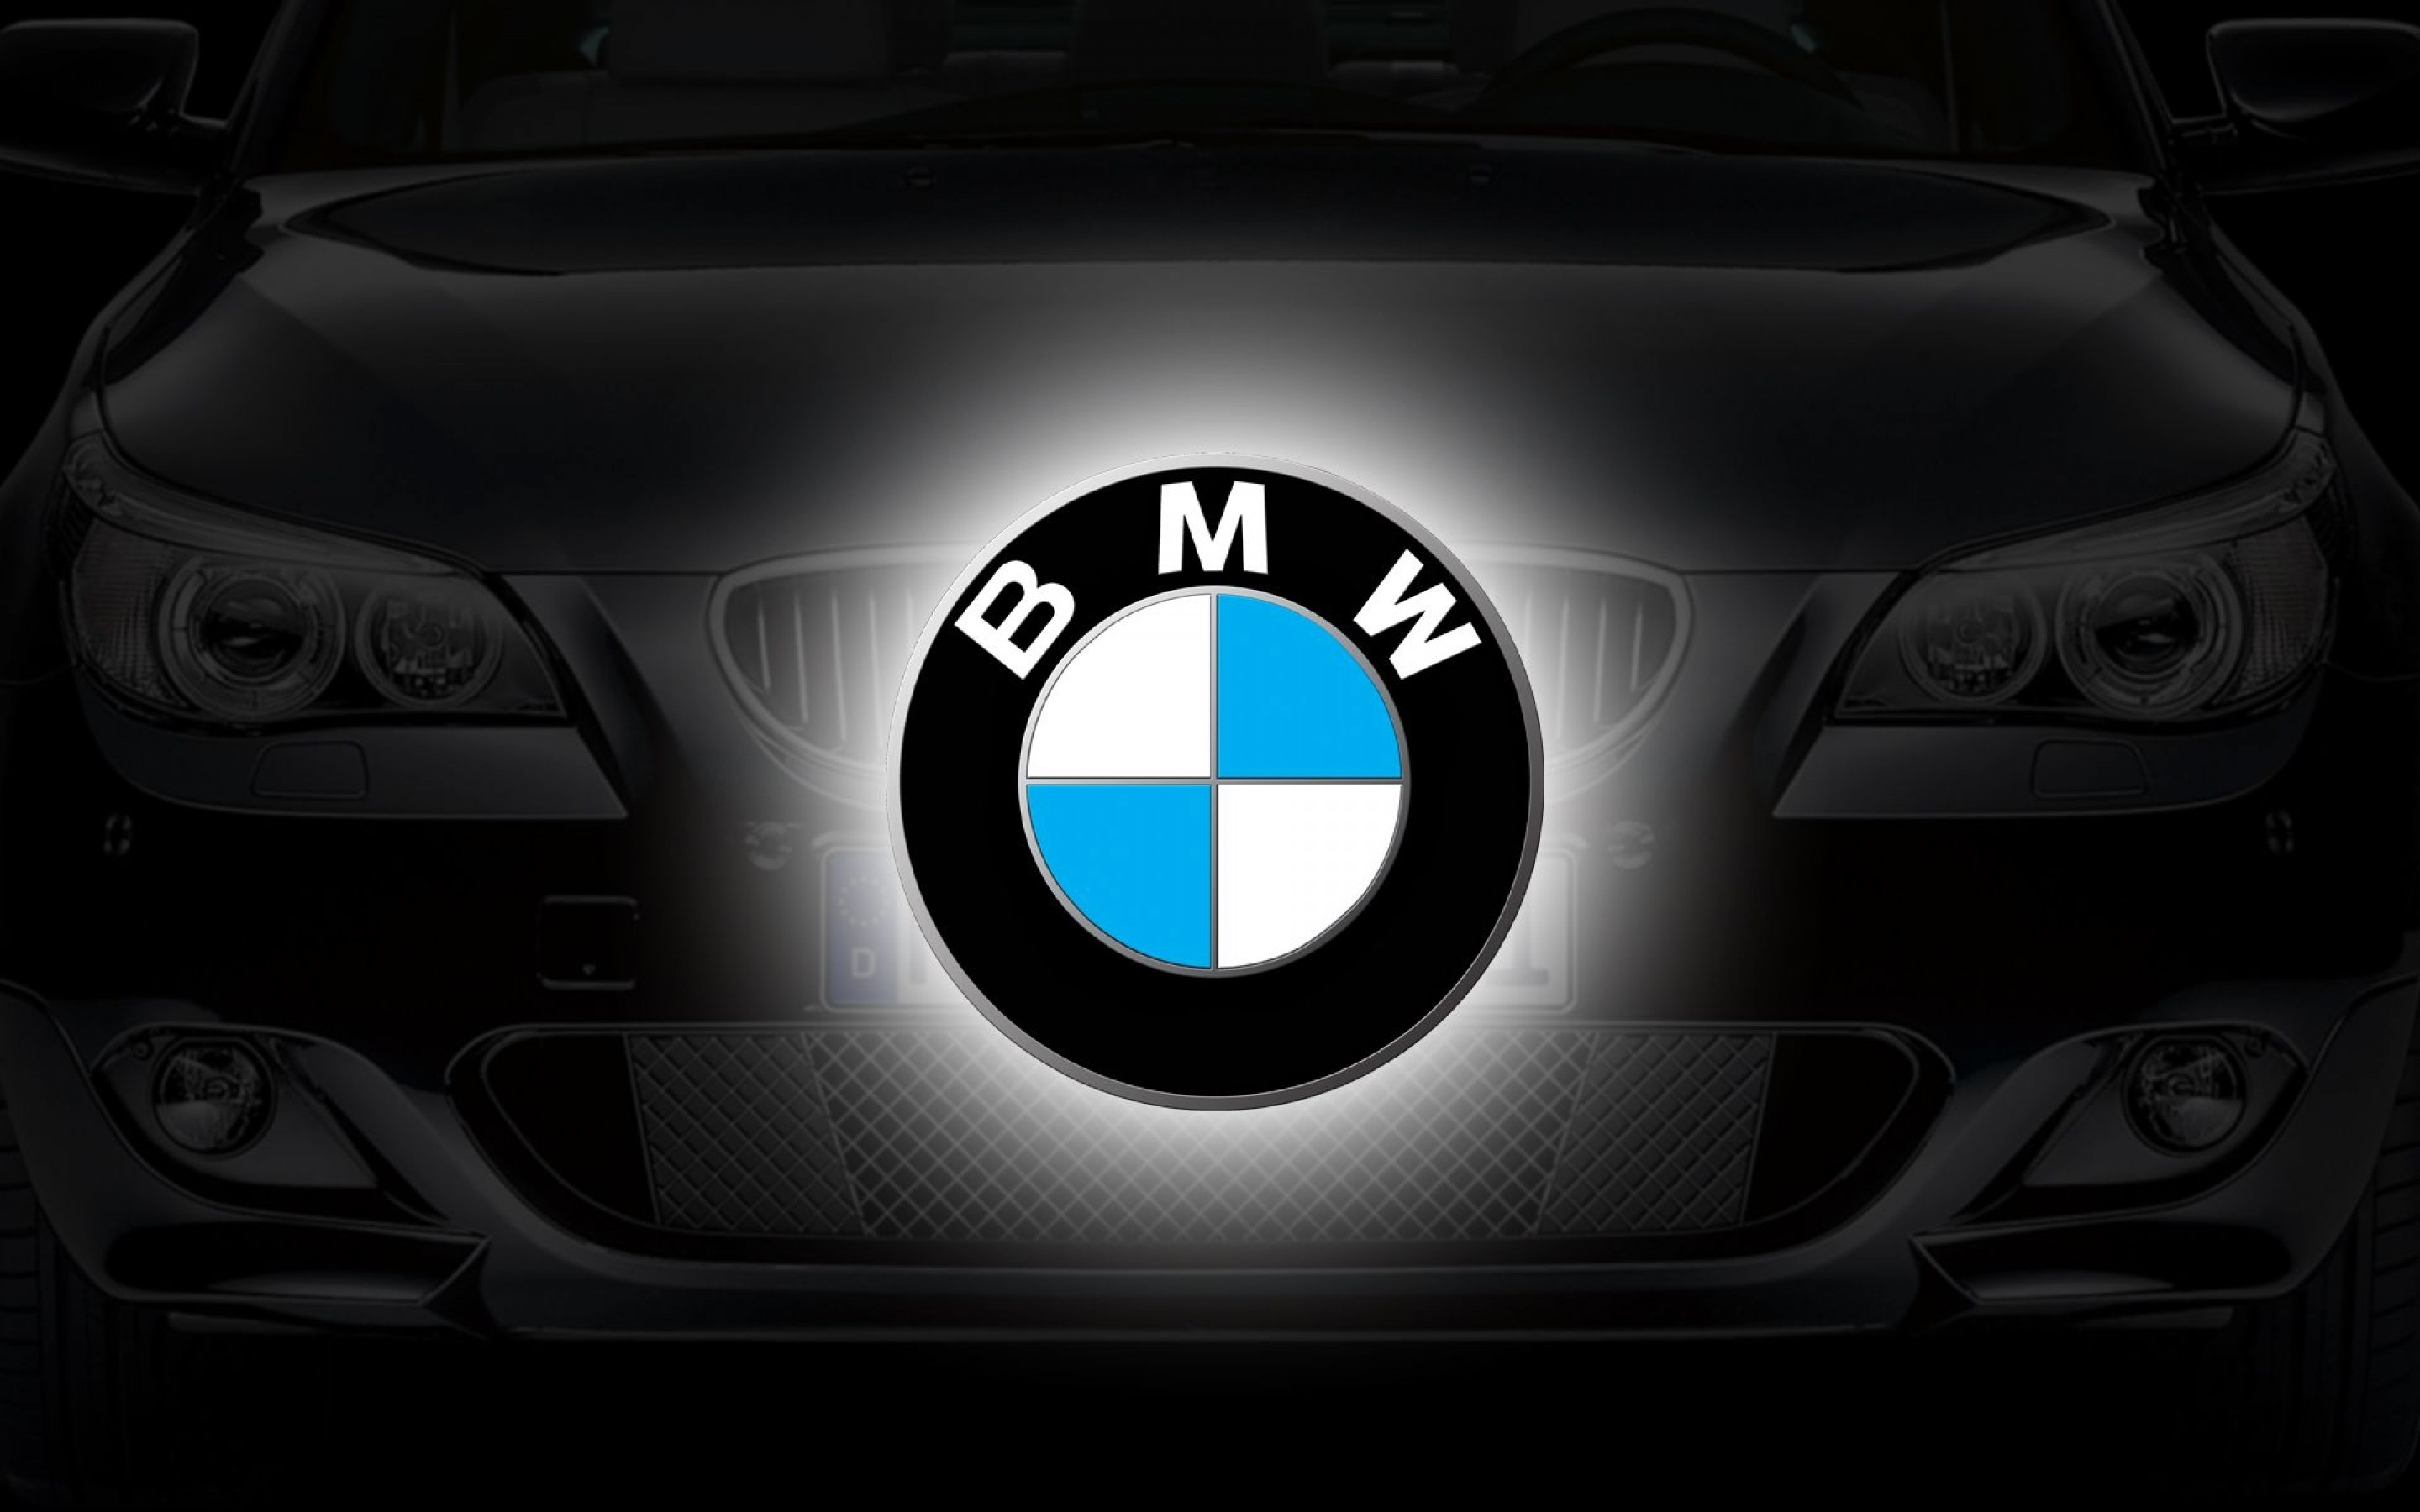 bmw logo wallpapers pictures images. Black Bedroom Furniture Sets. Home Design Ideas